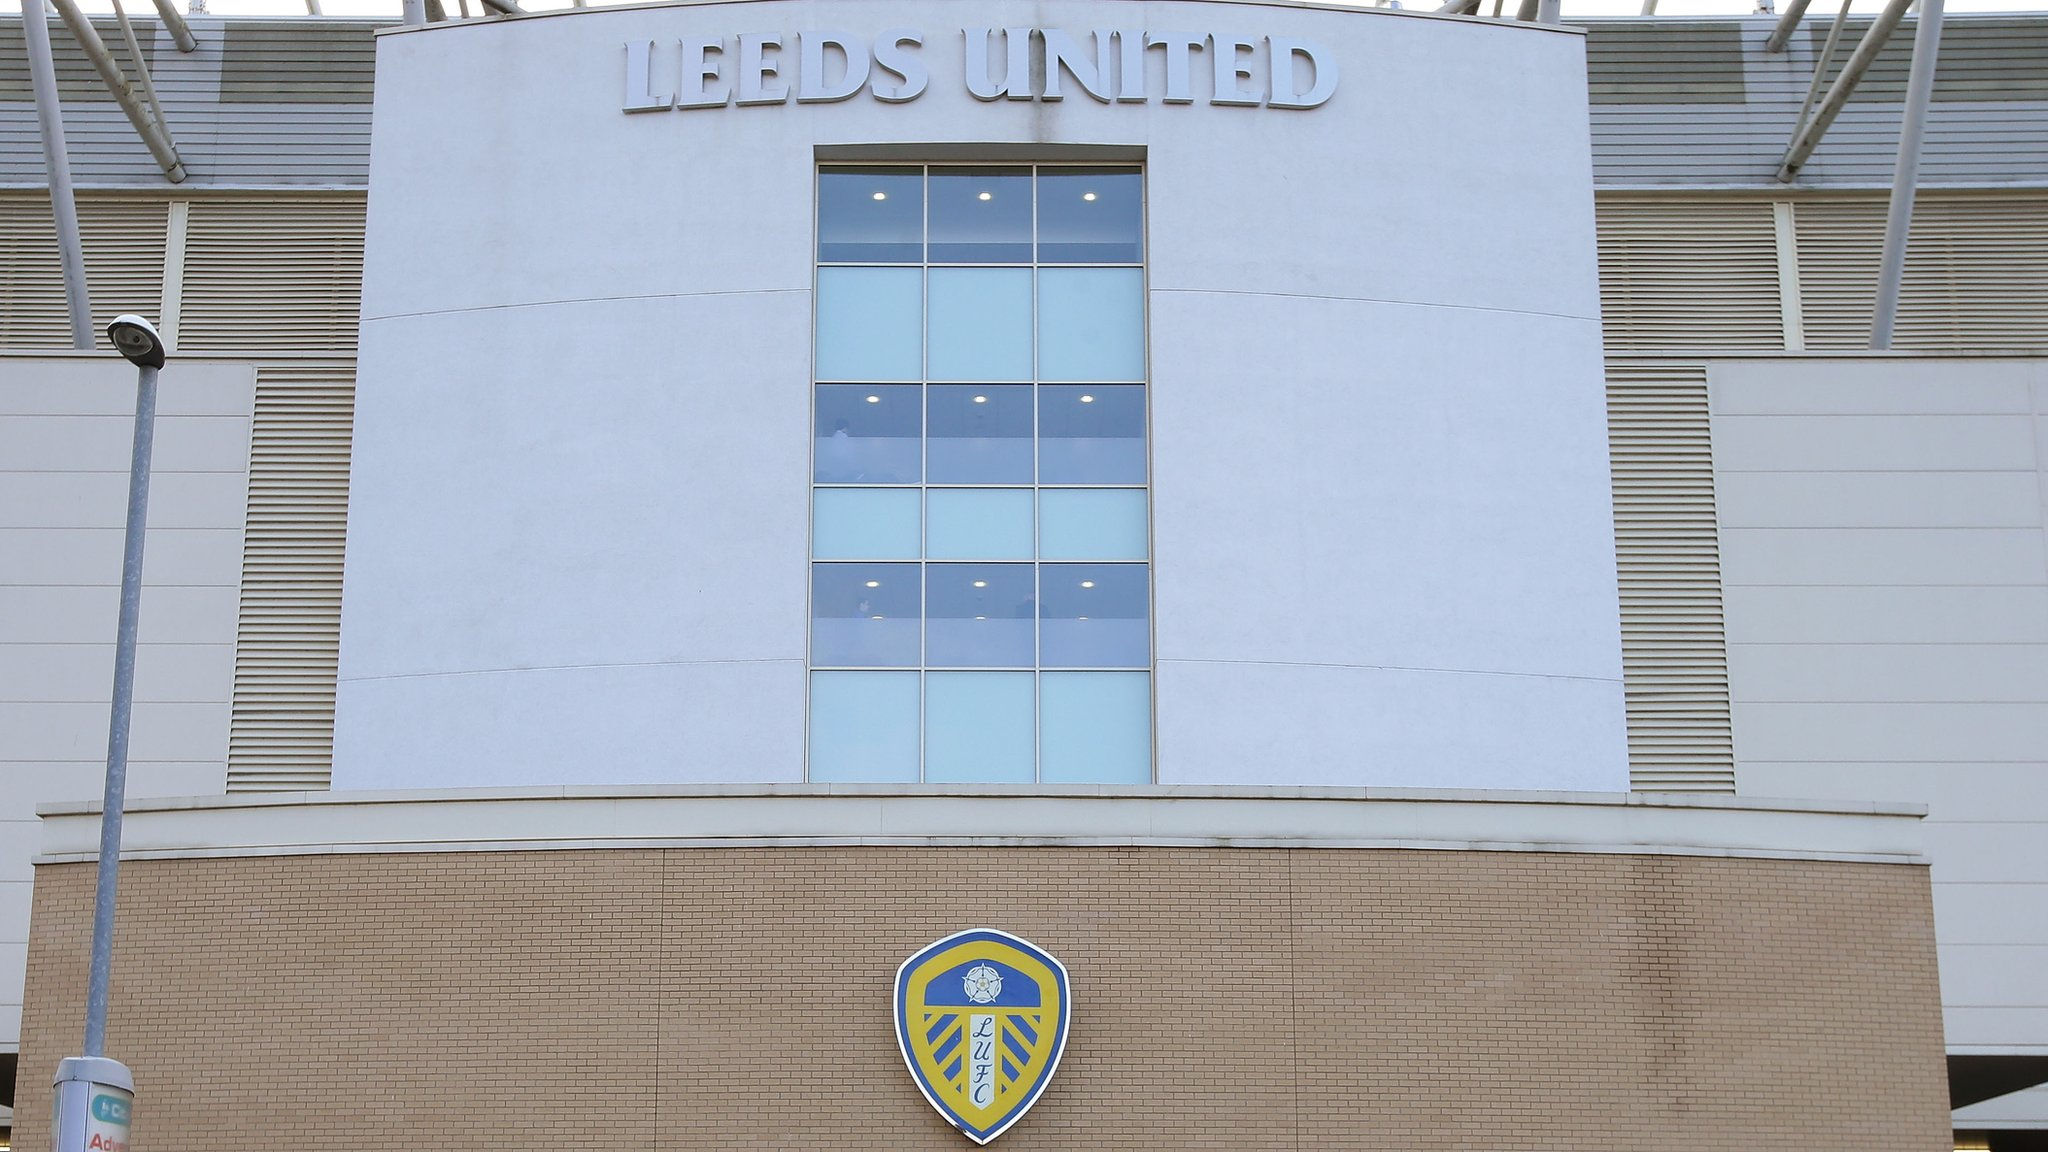 Ben Mansford: Leeds United Chief Executive to Leave Championship Club